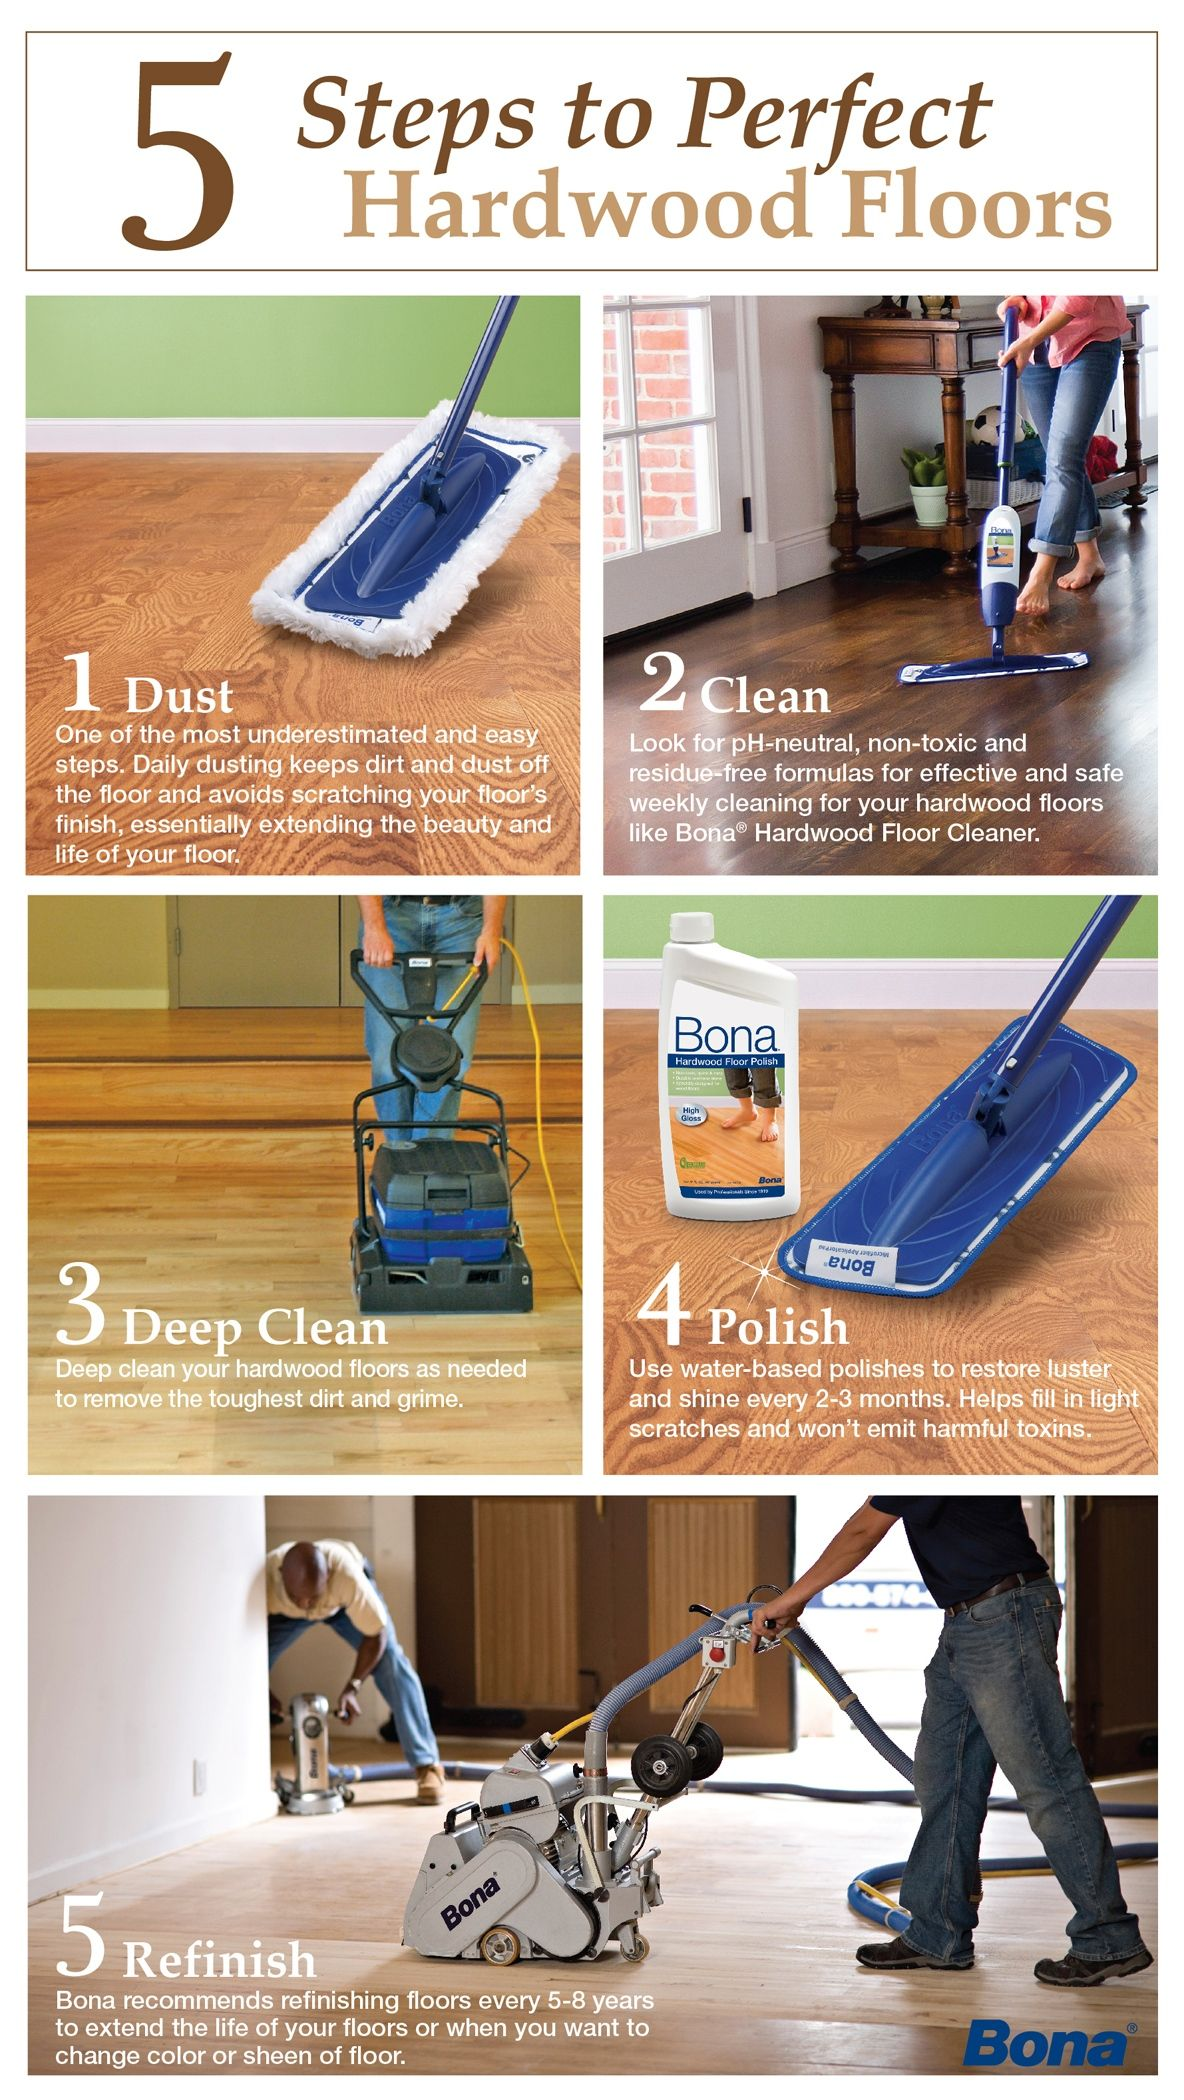 Use These Easy 5 Steps To Effectively Clean And Maintain Your Hardwood Floors Cleaning Wood Floors Flooring Hardwood Floor Care